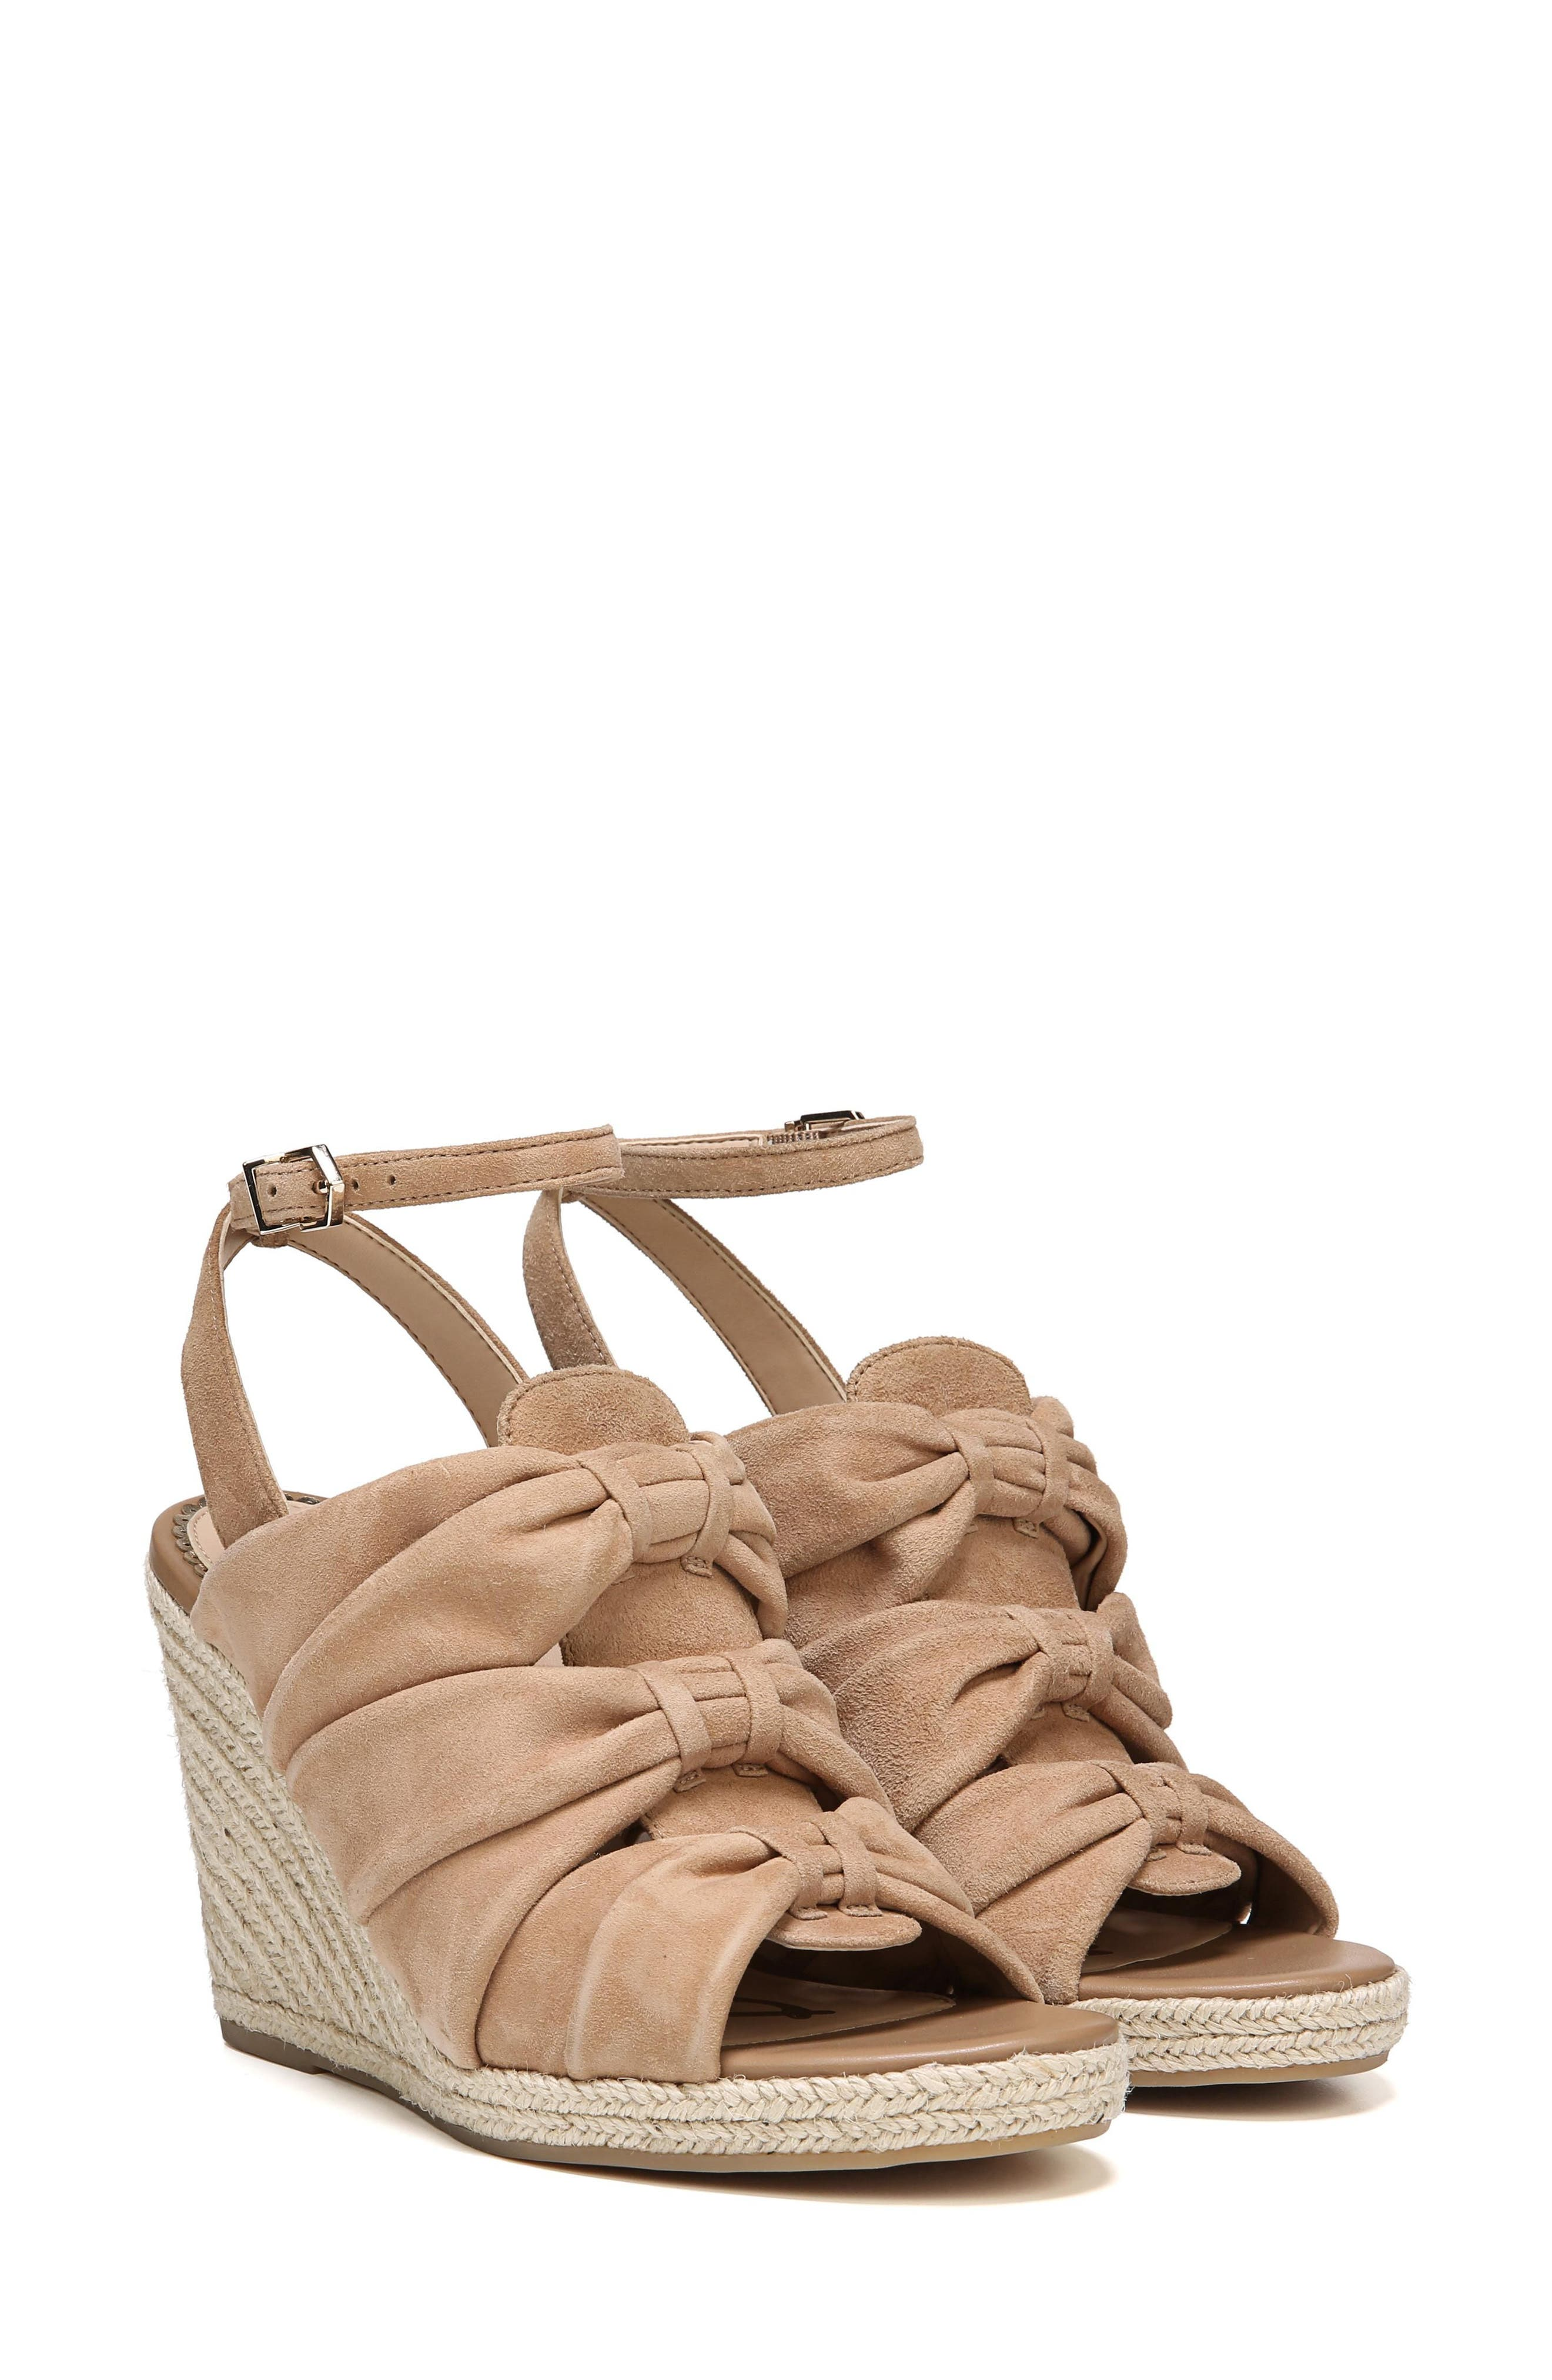 Awan Cinched Wedge Sandal,                             Alternate thumbnail 14, color,